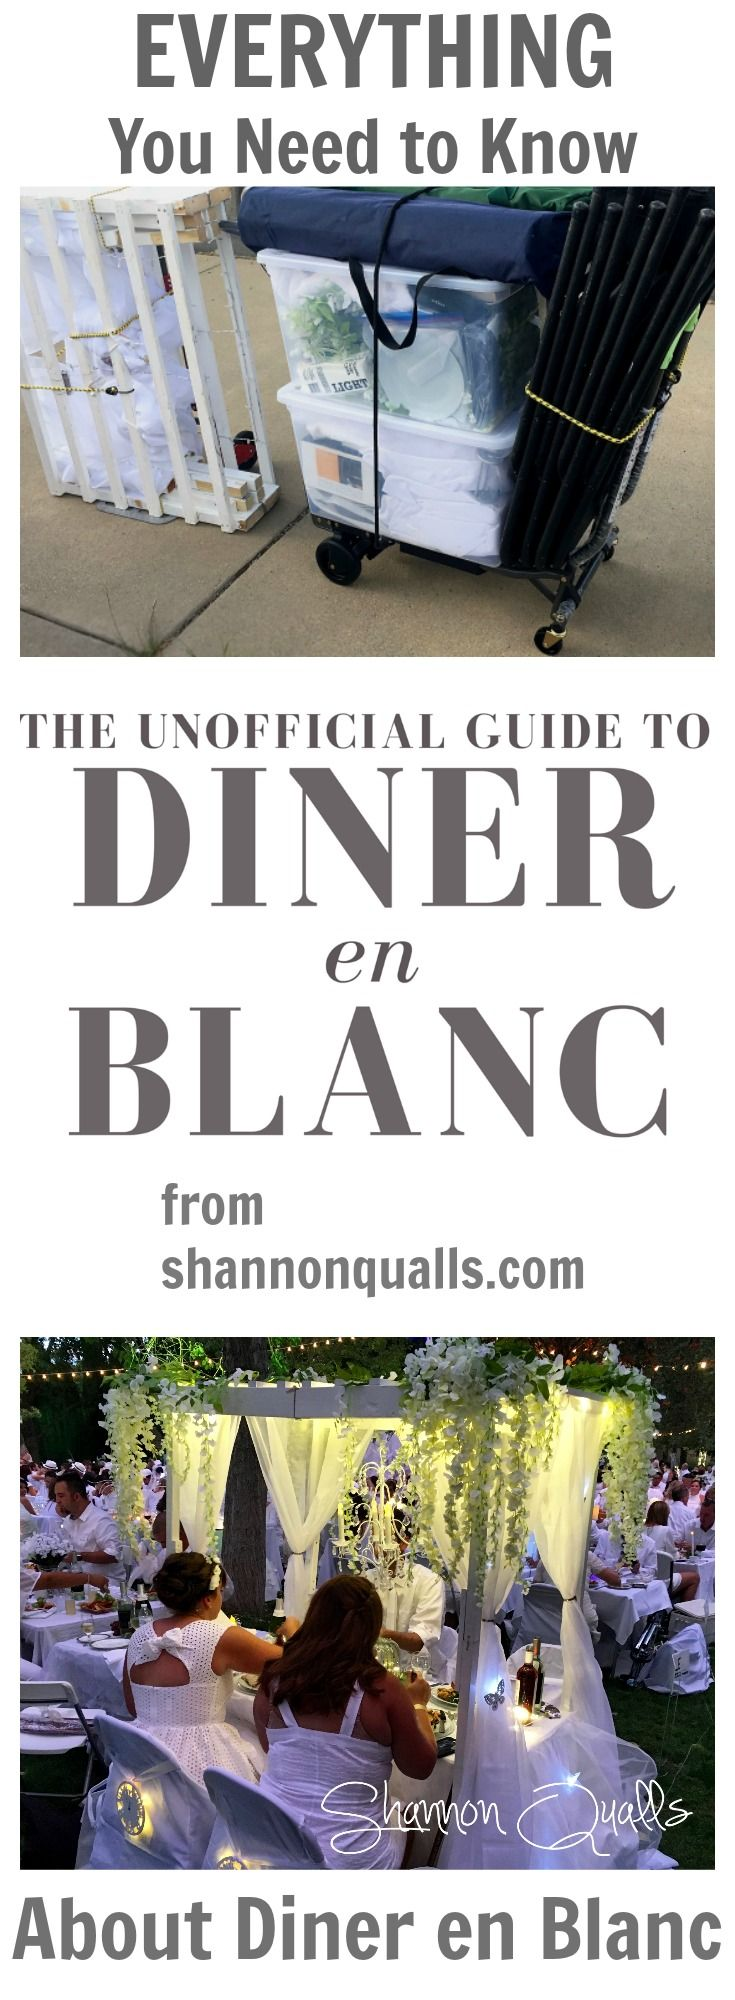 Everything You Need to Know about Diner en Blanc from shannonqualls.com